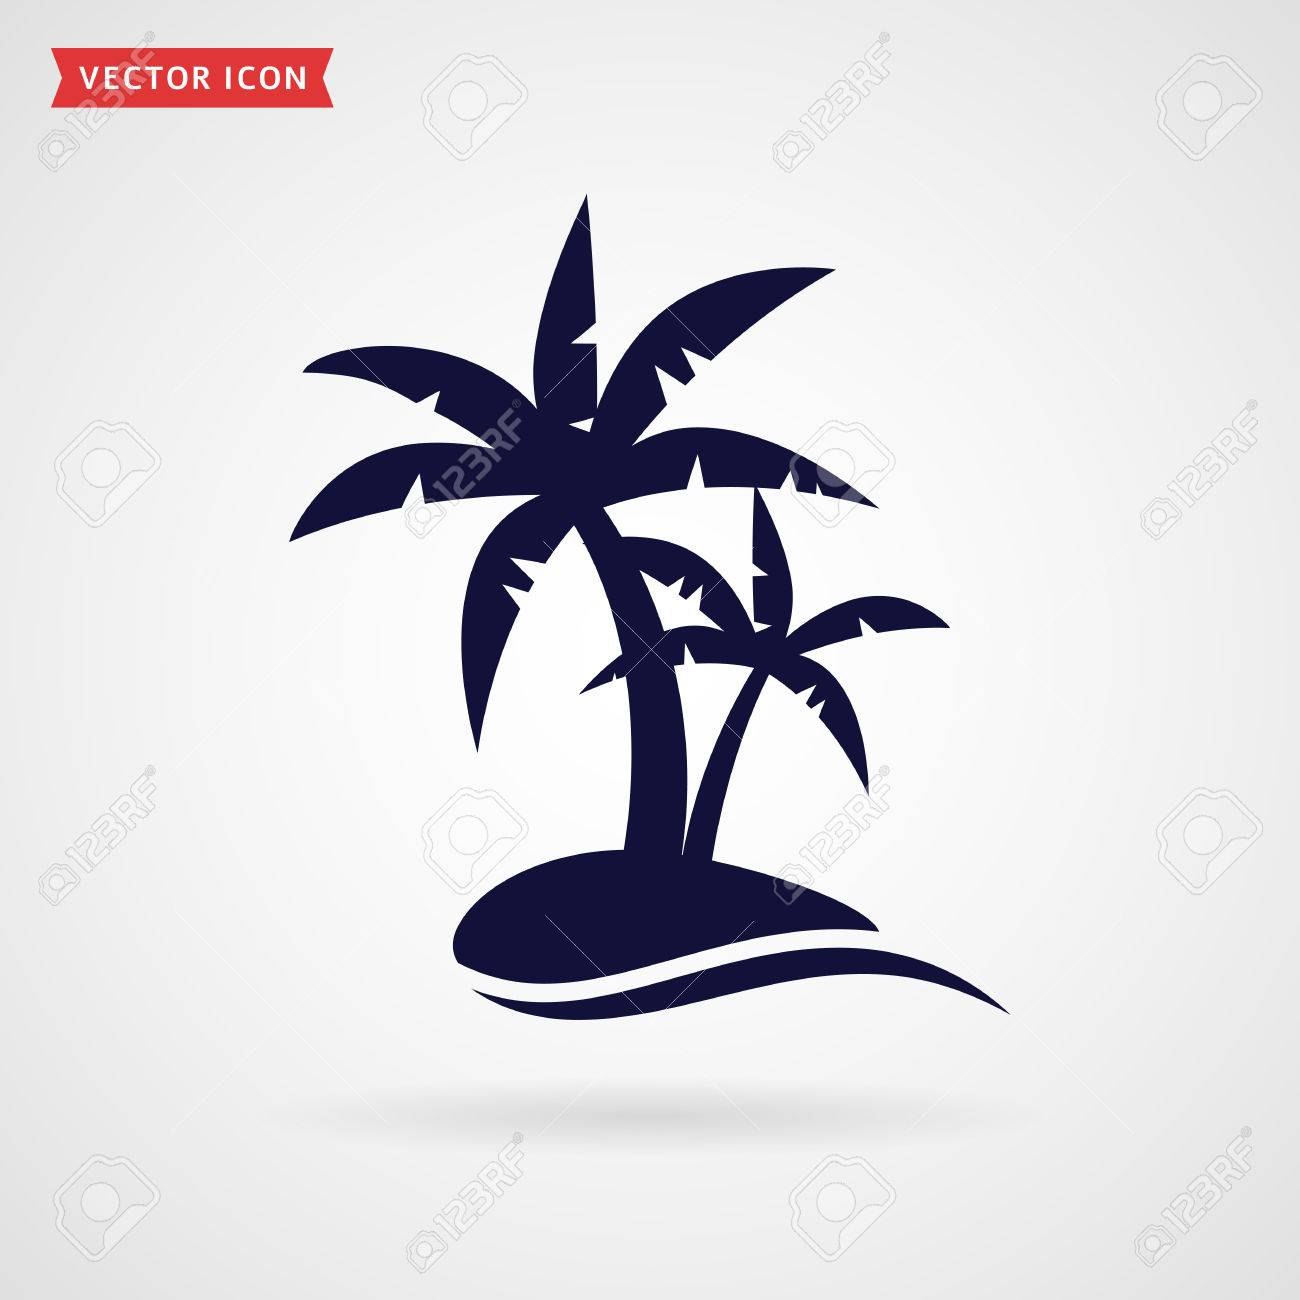 Palm tree icon isolated on white background. Tropical beach and travel themes. Vector illustration. - 60018813